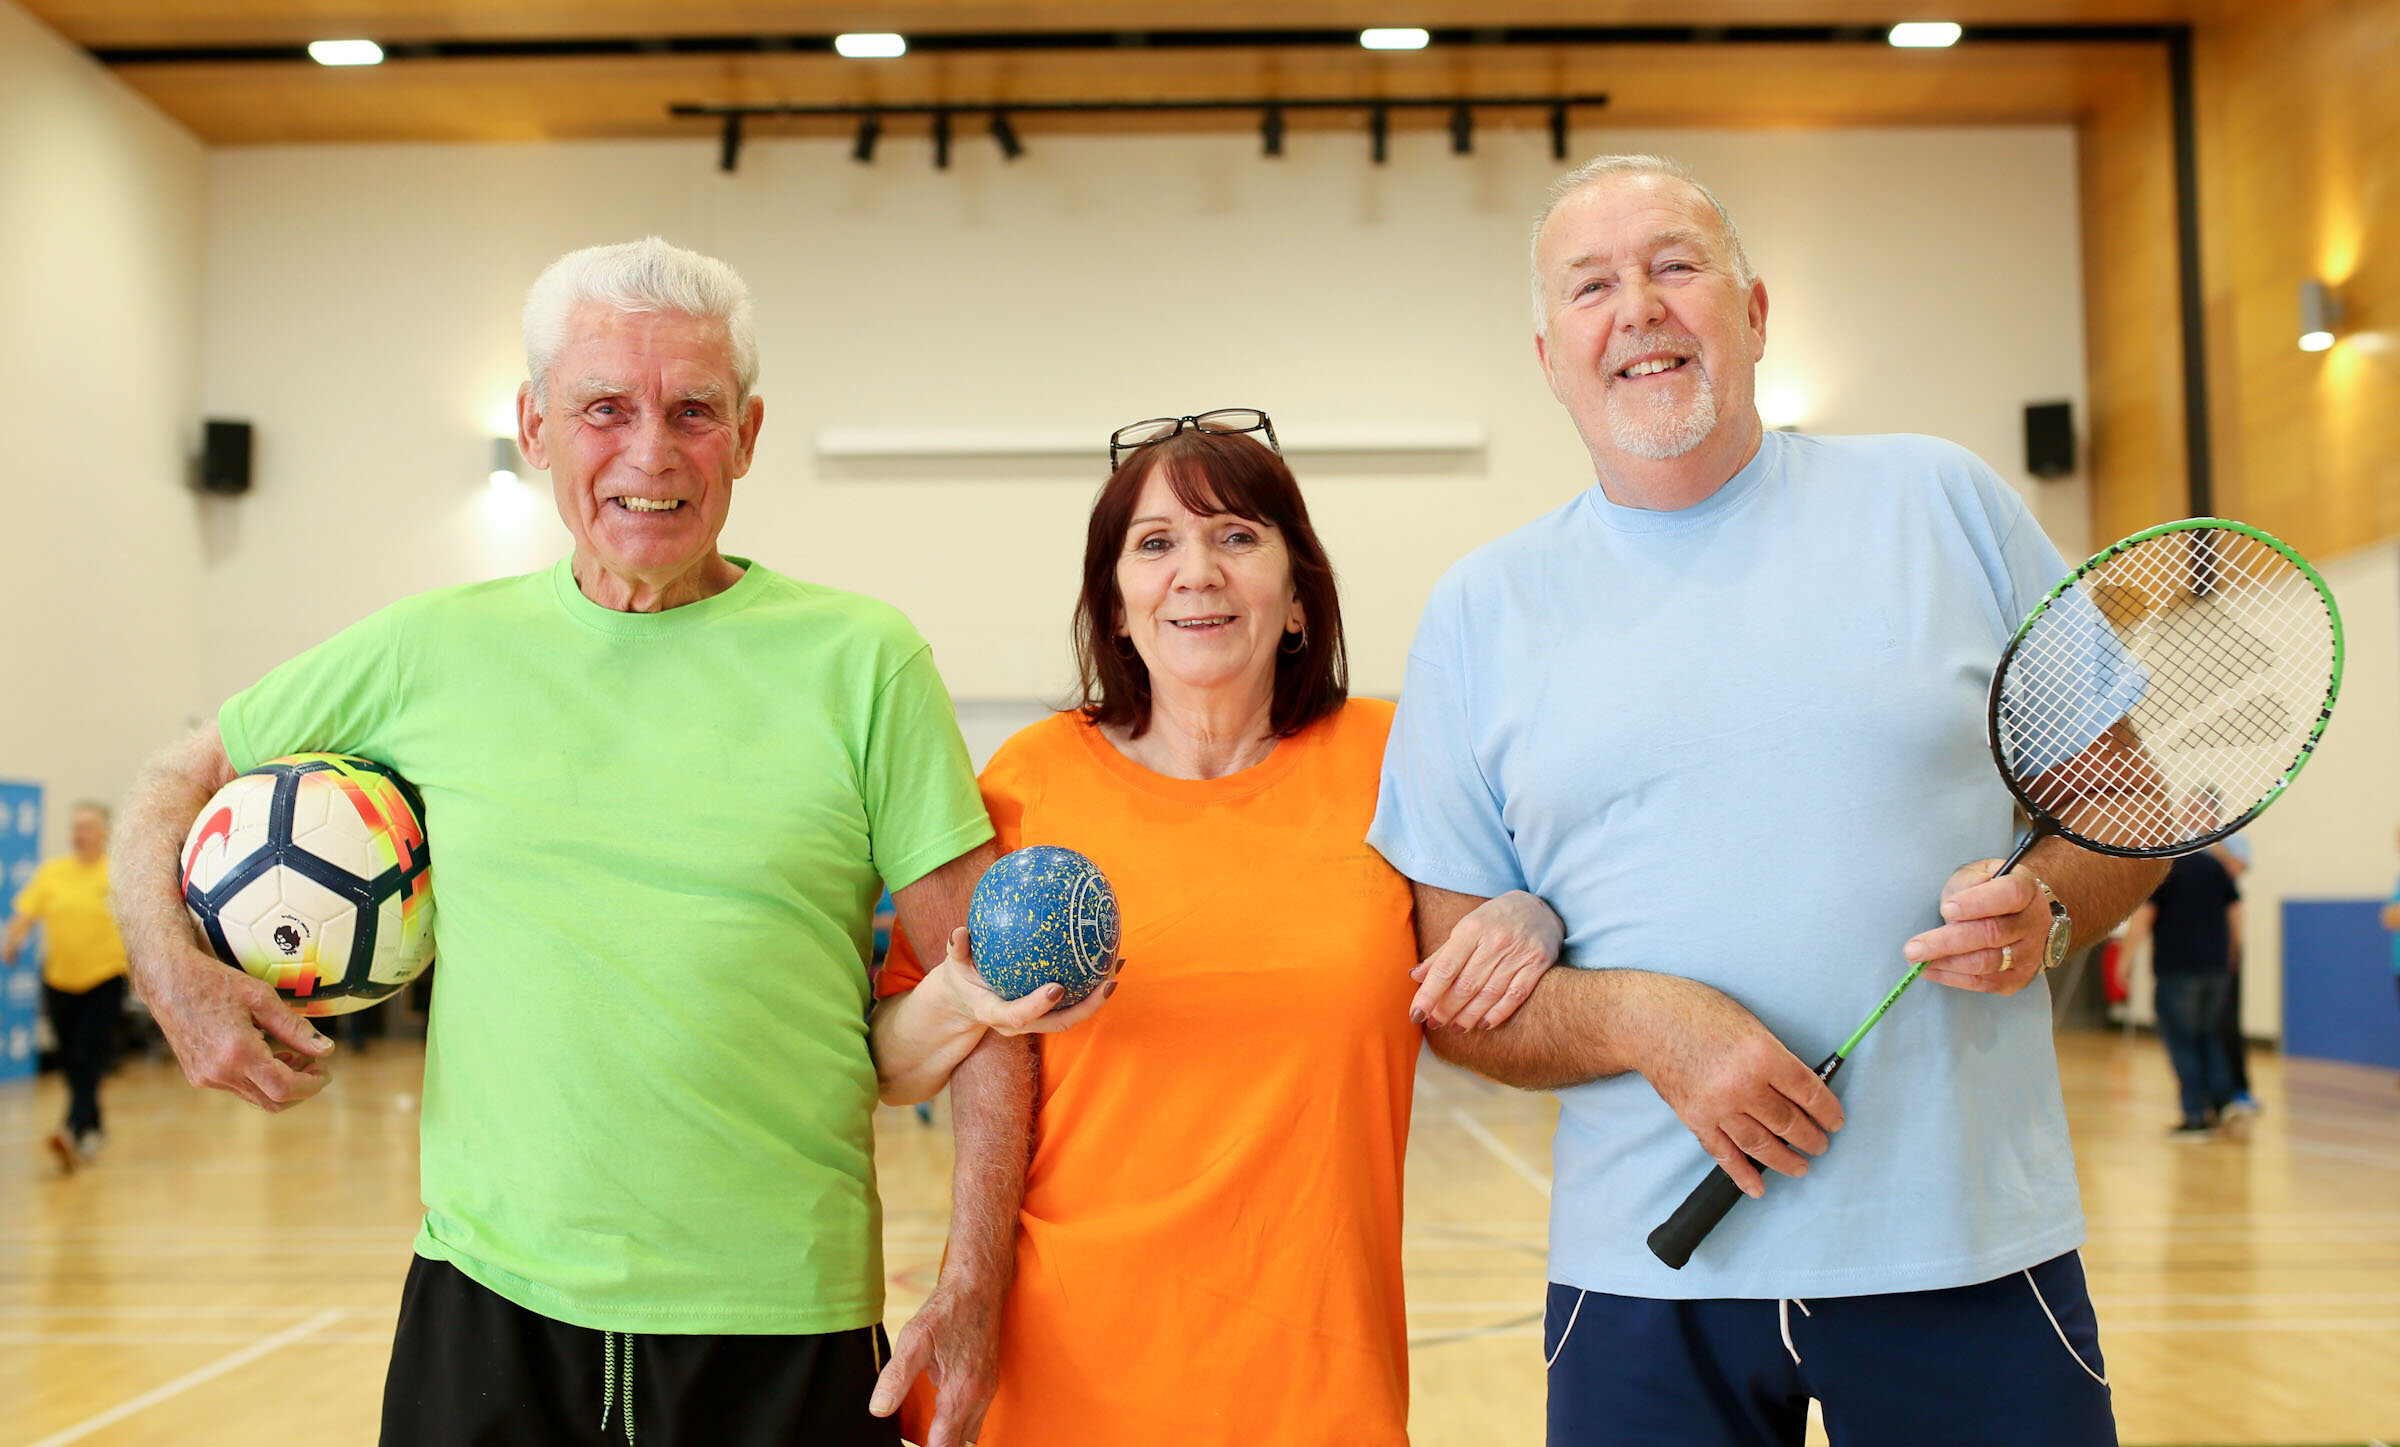 The winning team of the 2018 Better Club Games from Shankill Leisure Centre.